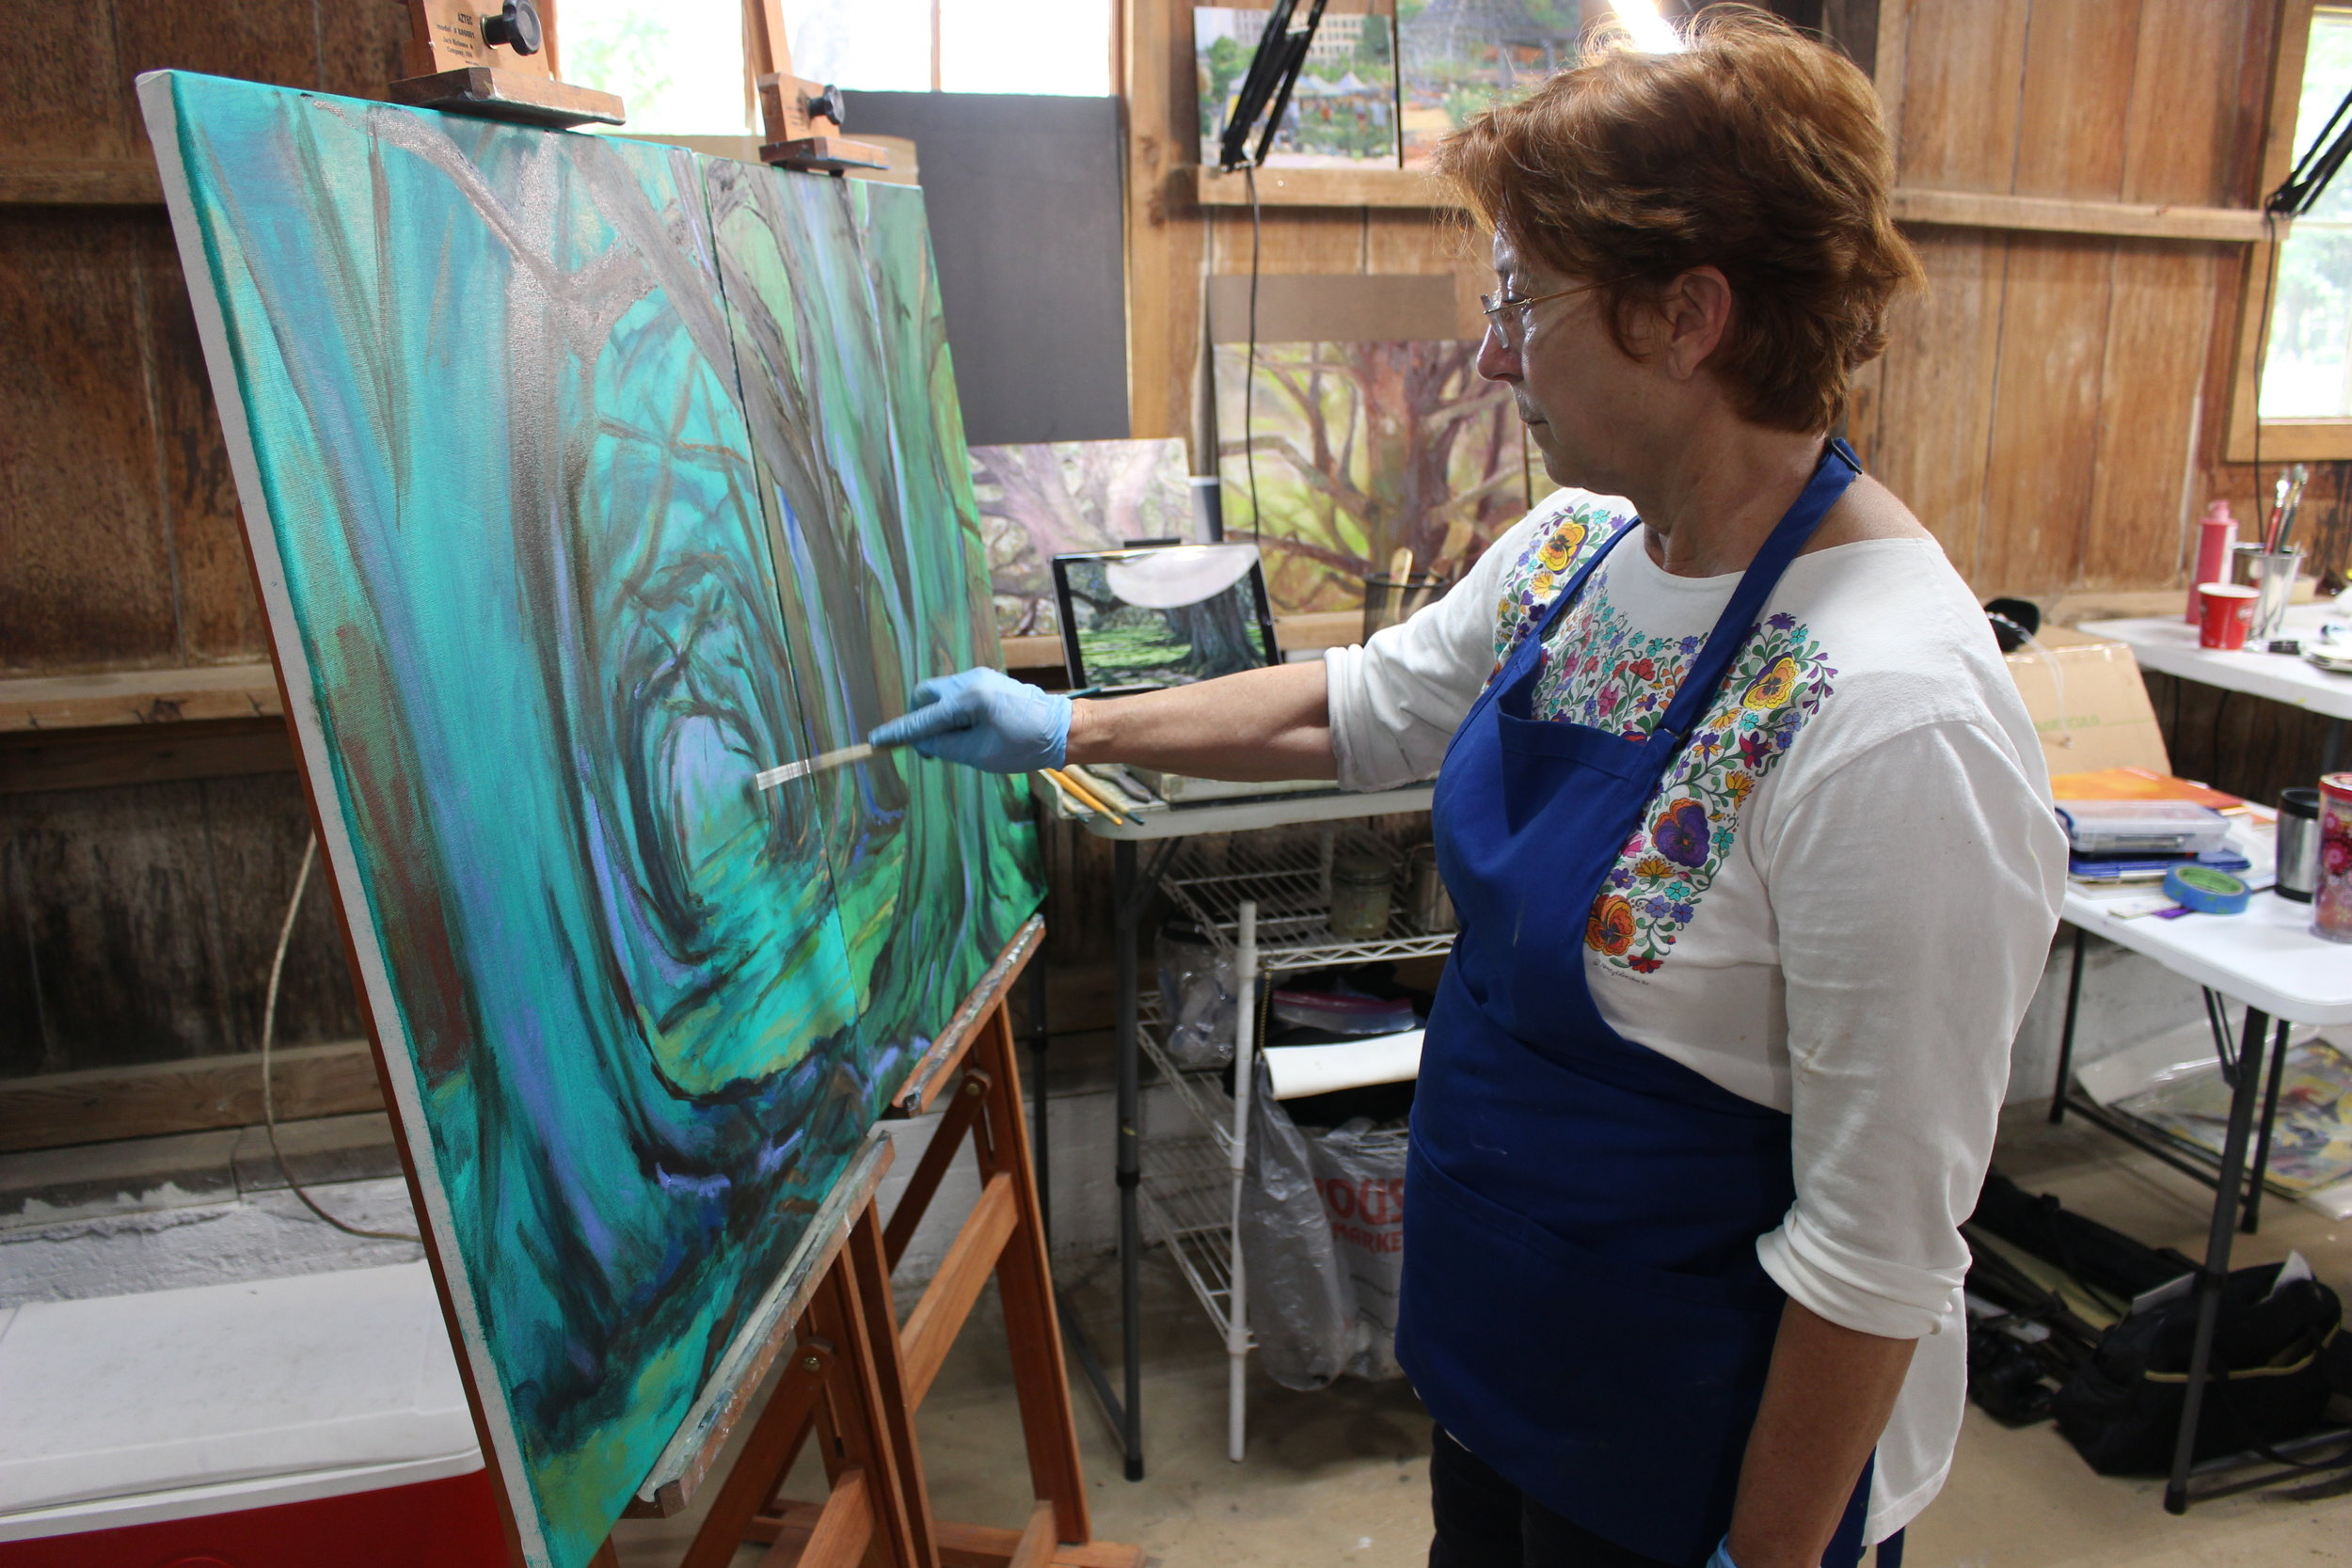 Open Studio Time - Now available to everyone; Mondays 1-7 p.m.